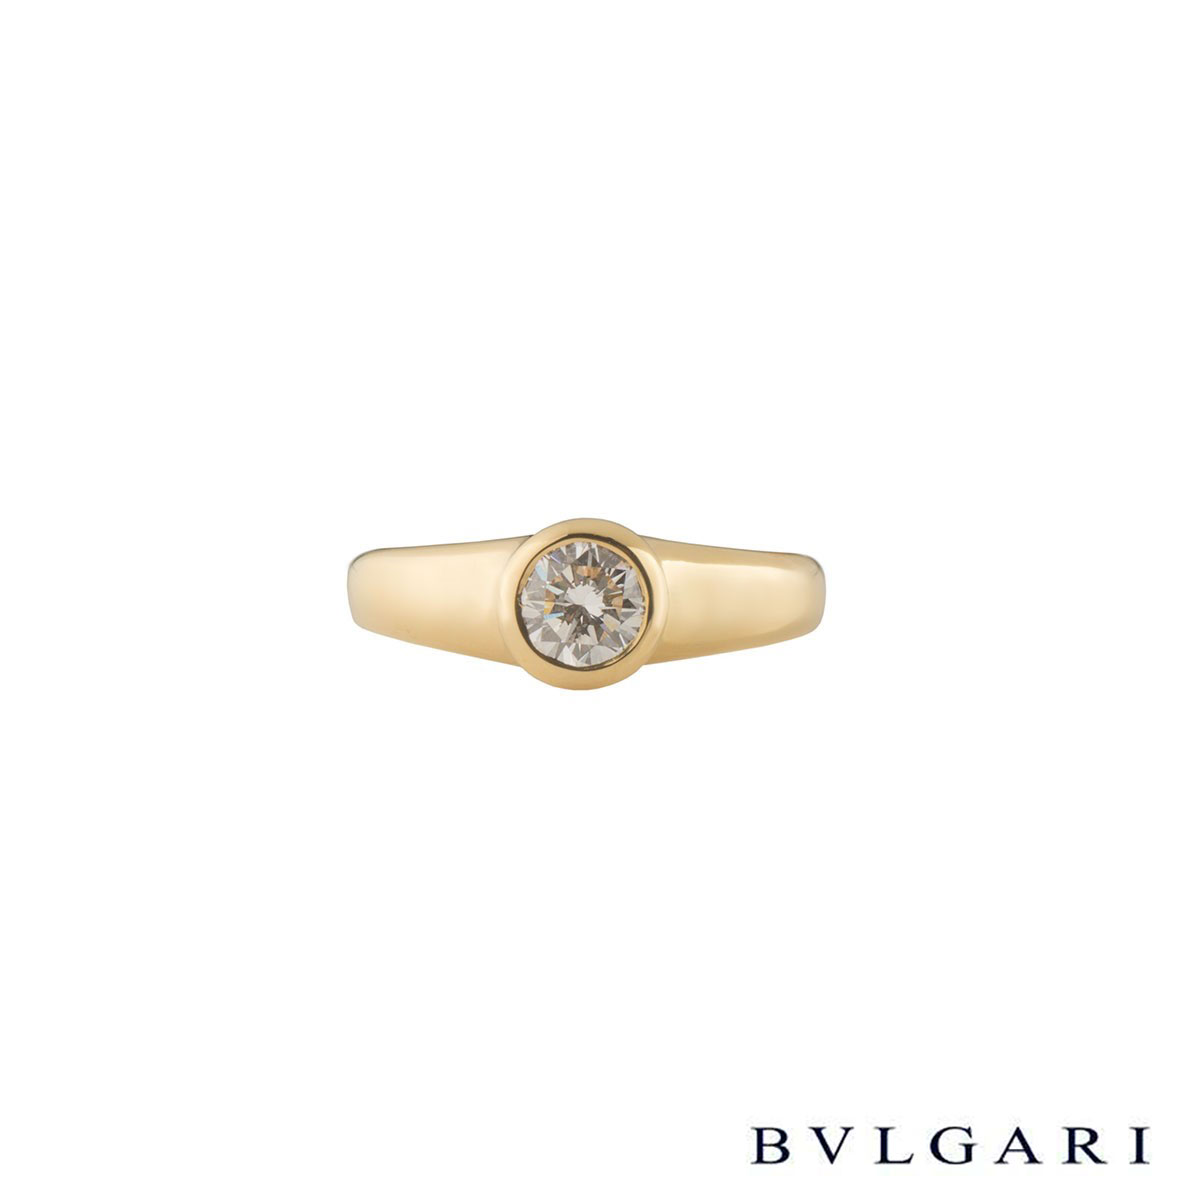 Bvlgari Diamond Ring 0.49ct F/VS1